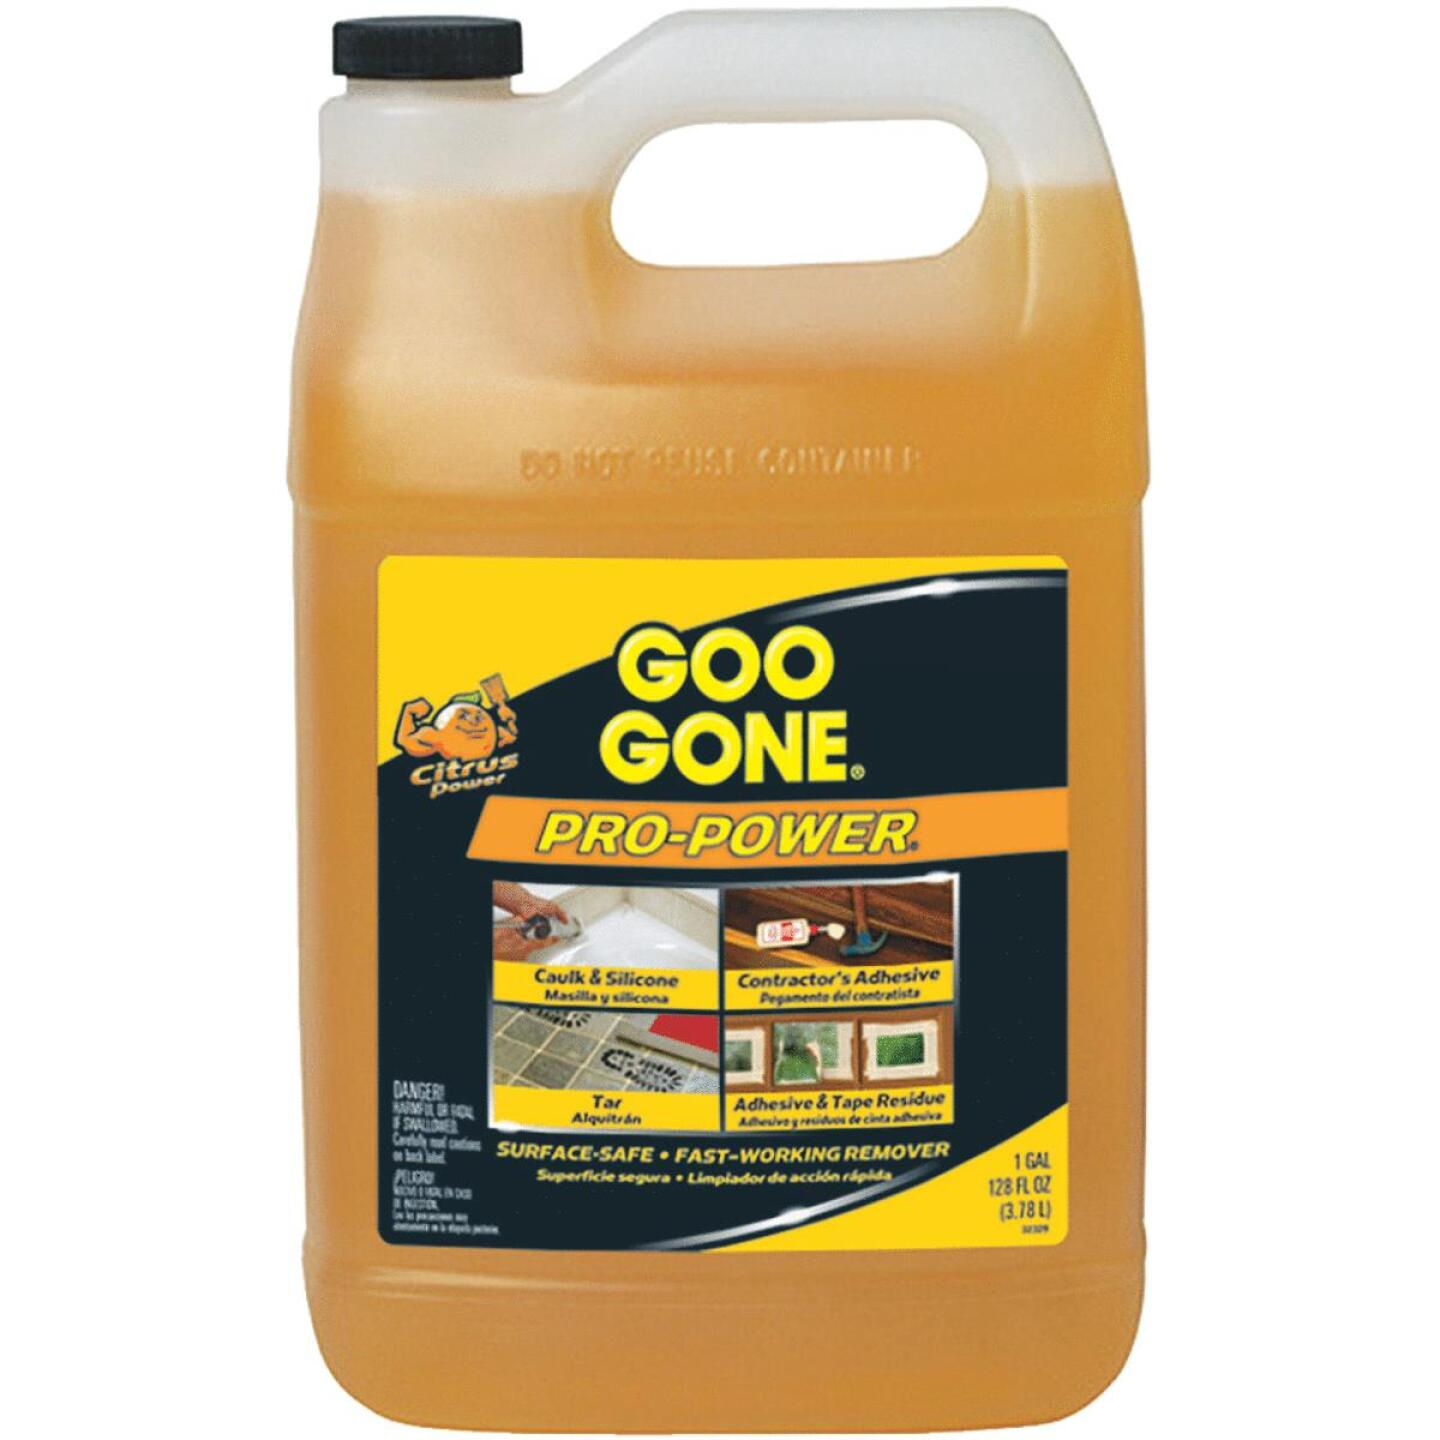 Goo Gone 1 Gal. Pro-Power Adhesive Remover Image 22